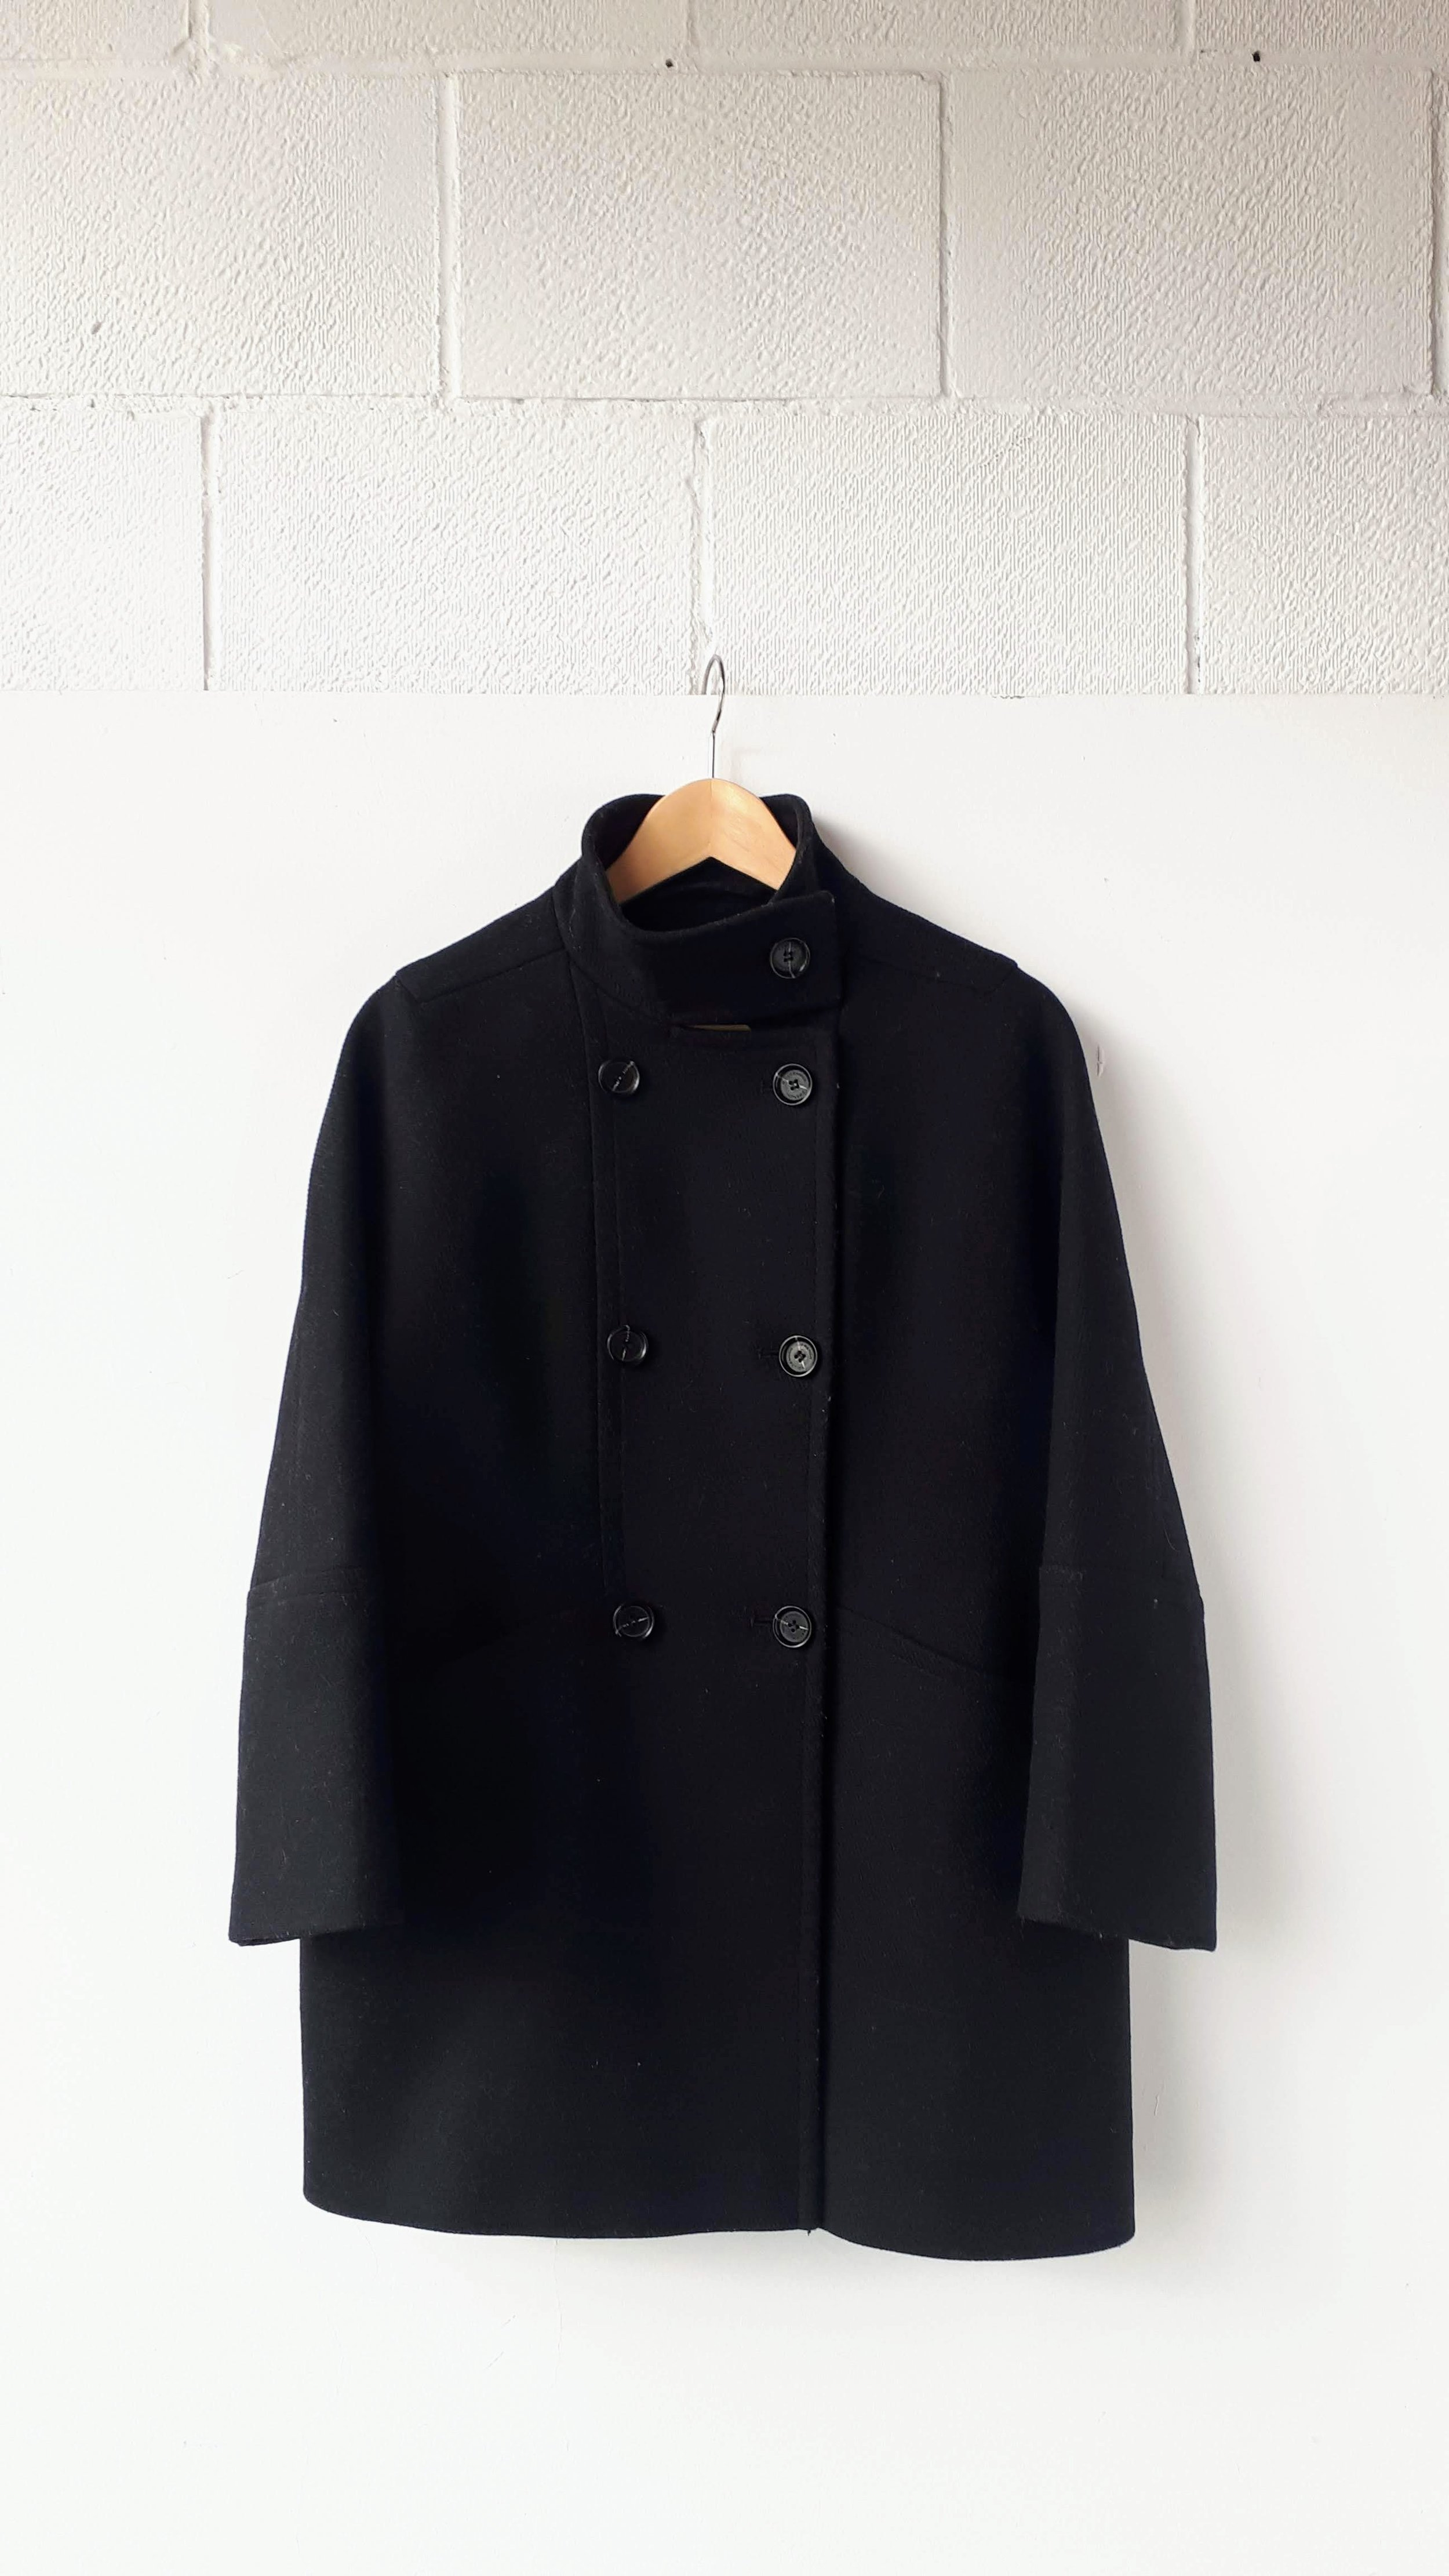 French Connection coat; Size M, $62